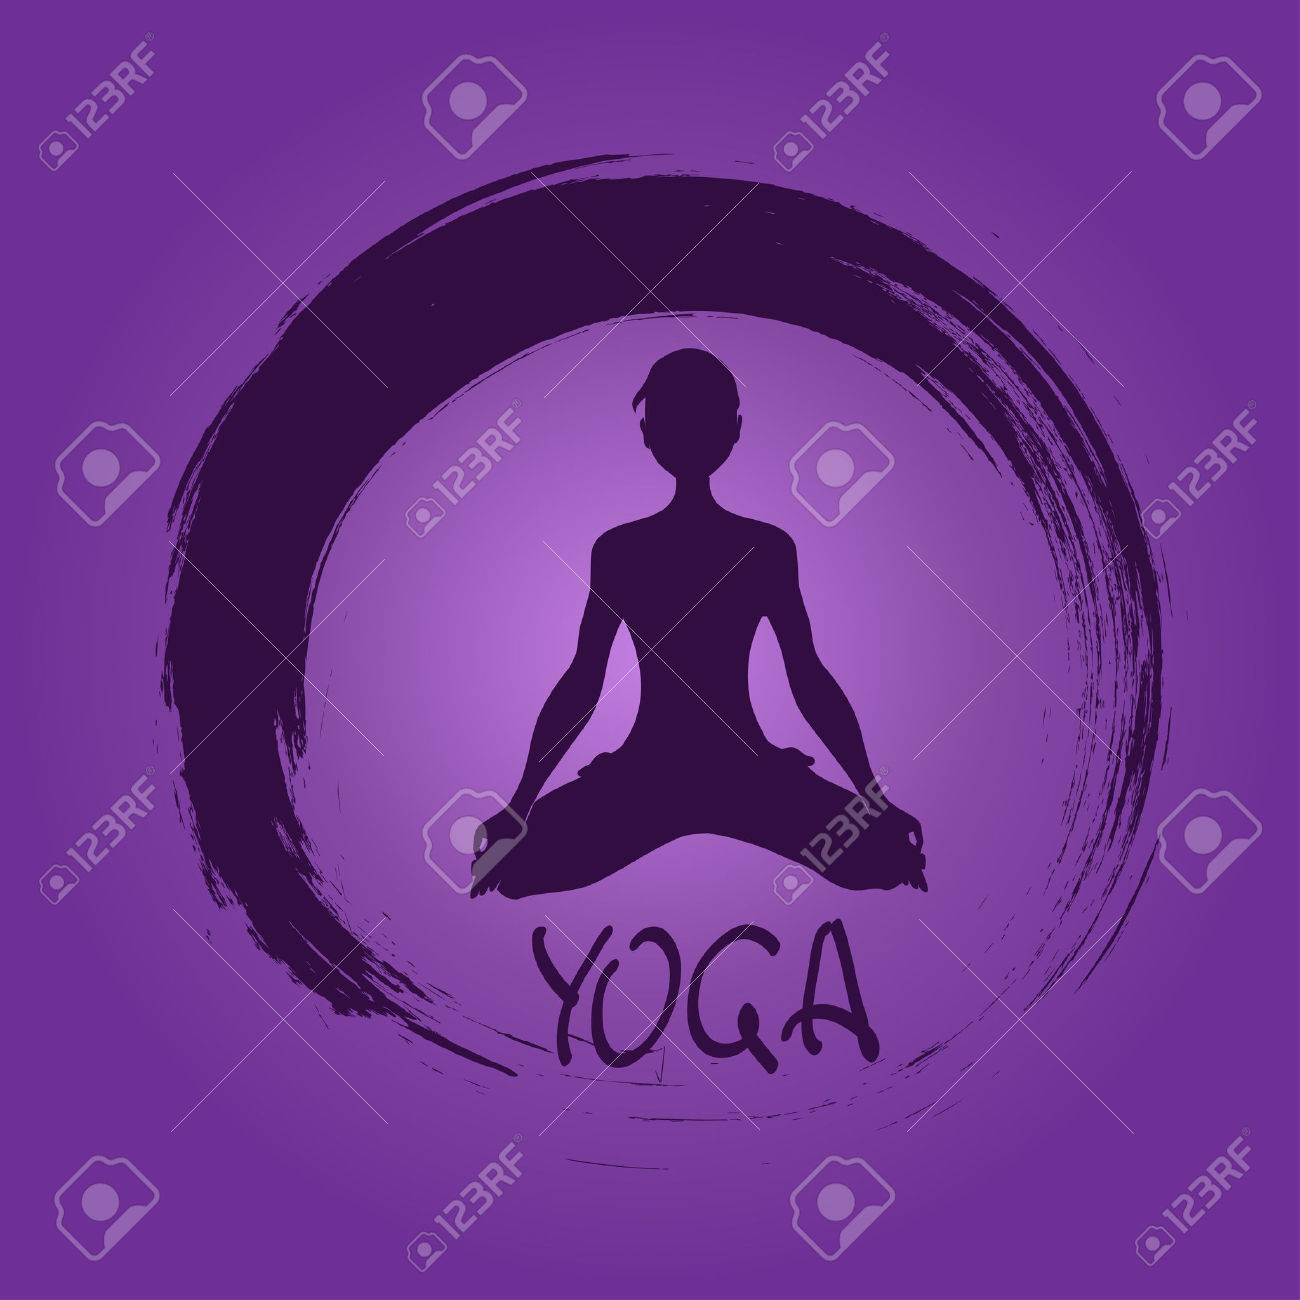 Isolated yoga label with Zen symbol and Lotus pose Stock Vector - 23499216